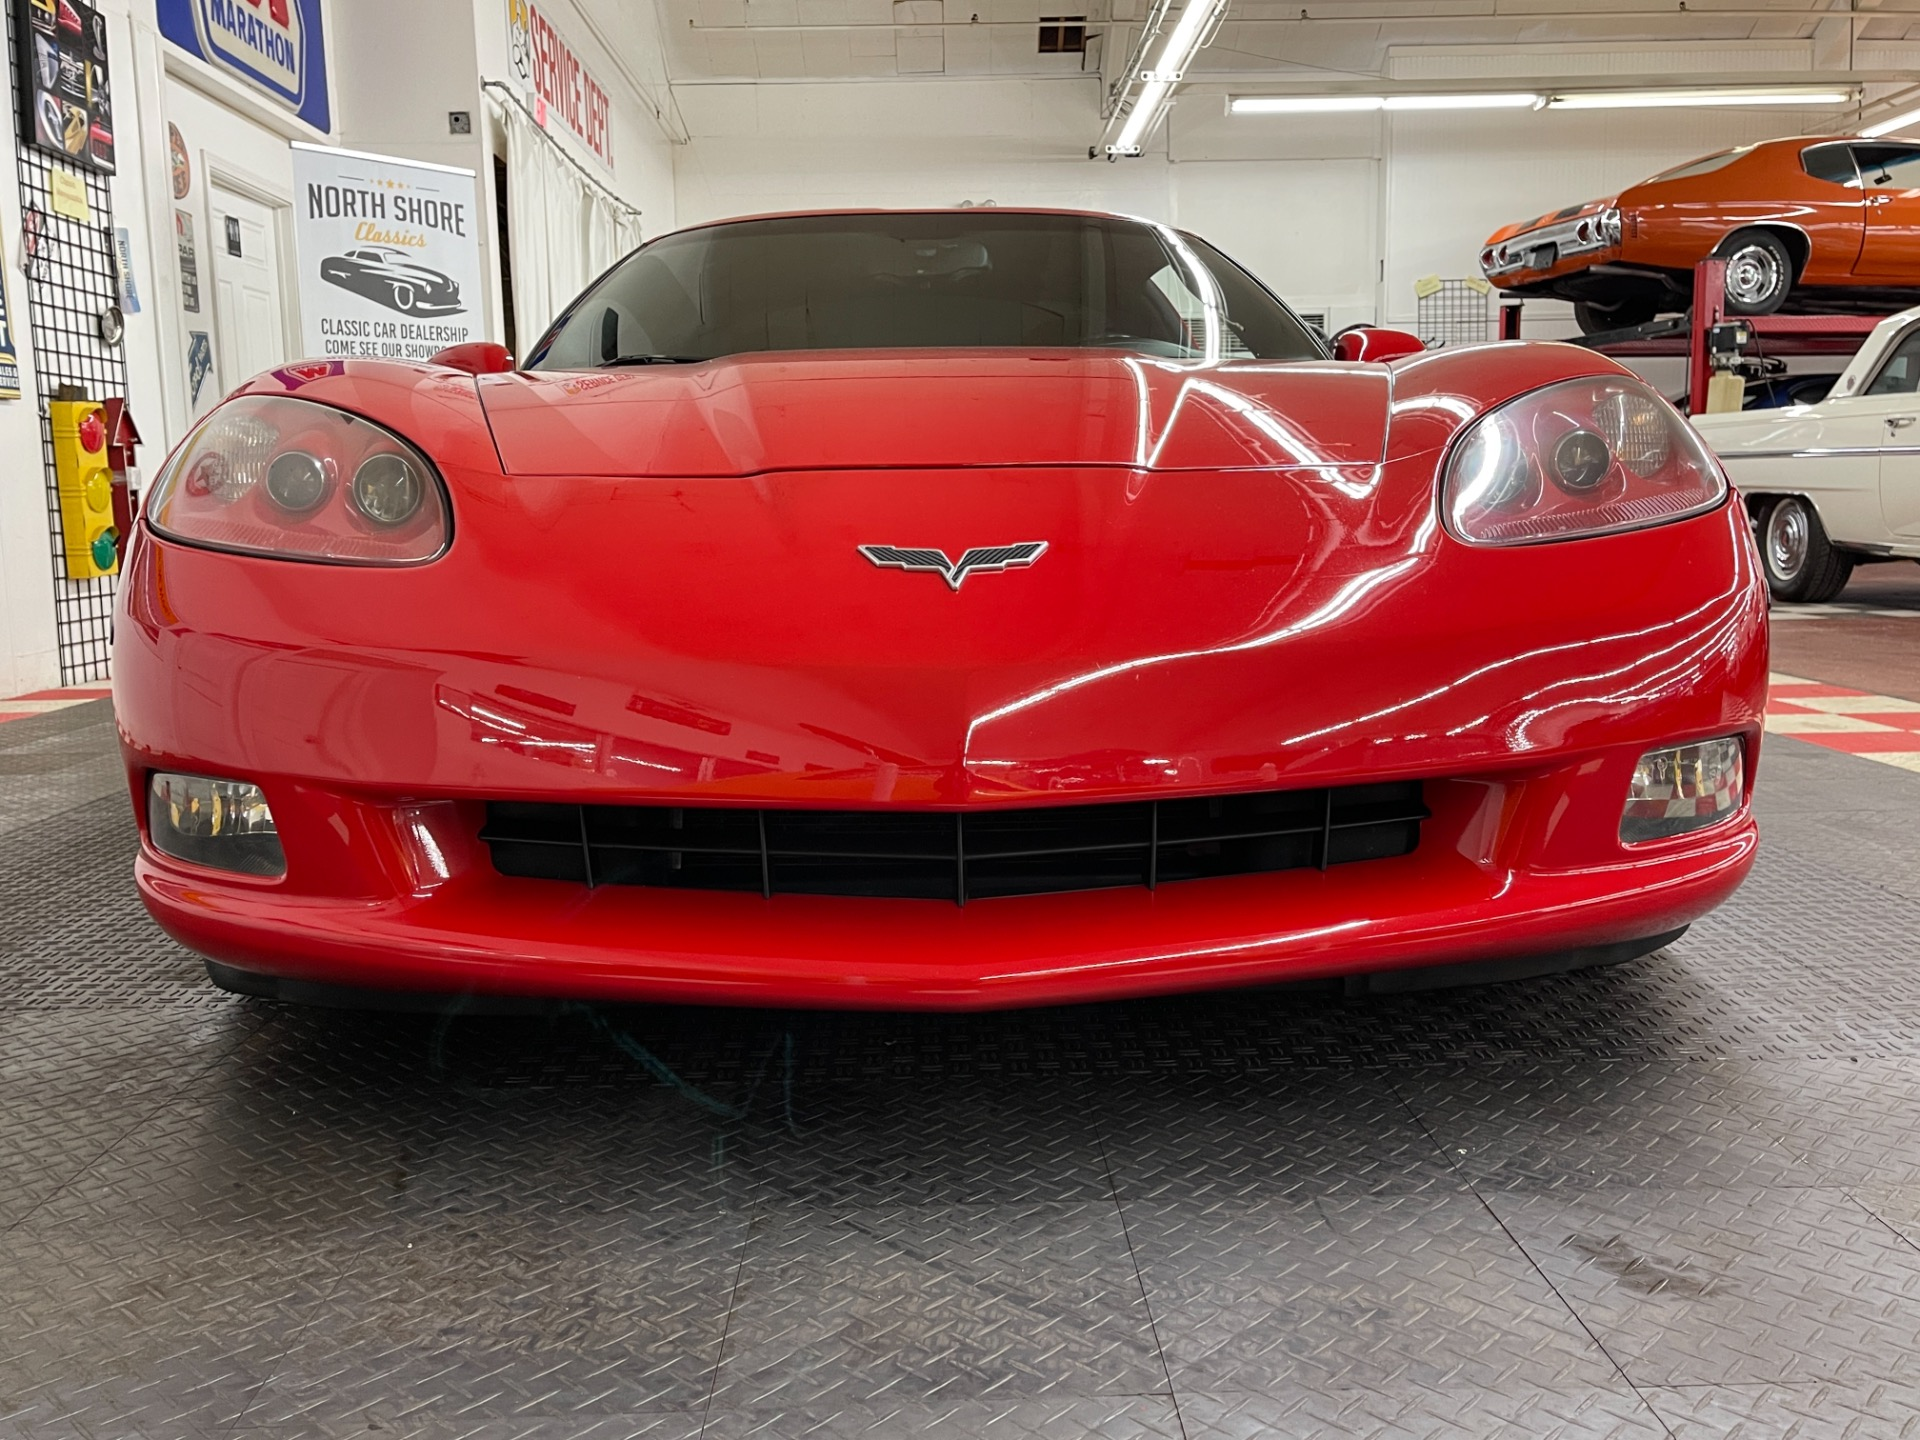 Used 2007 Chevrolet Corvette - LOW MILES - 460 HP AT THE WHEELS - SUPER CLEAN - SEE VIDEO - | Mundelein, IL